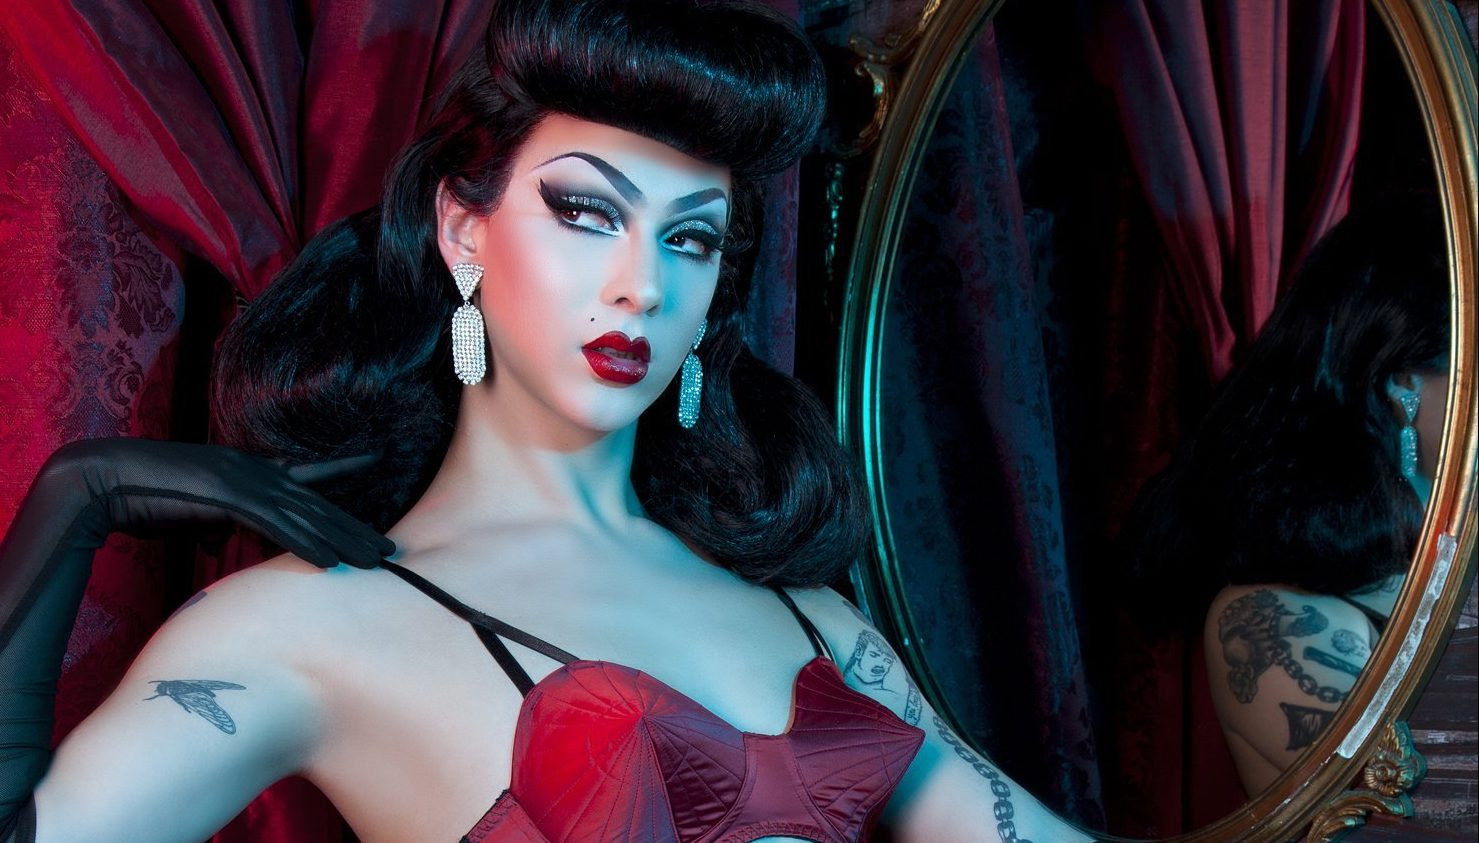 Drag Performer Violet Chachki Featured in Lingerie Campaign